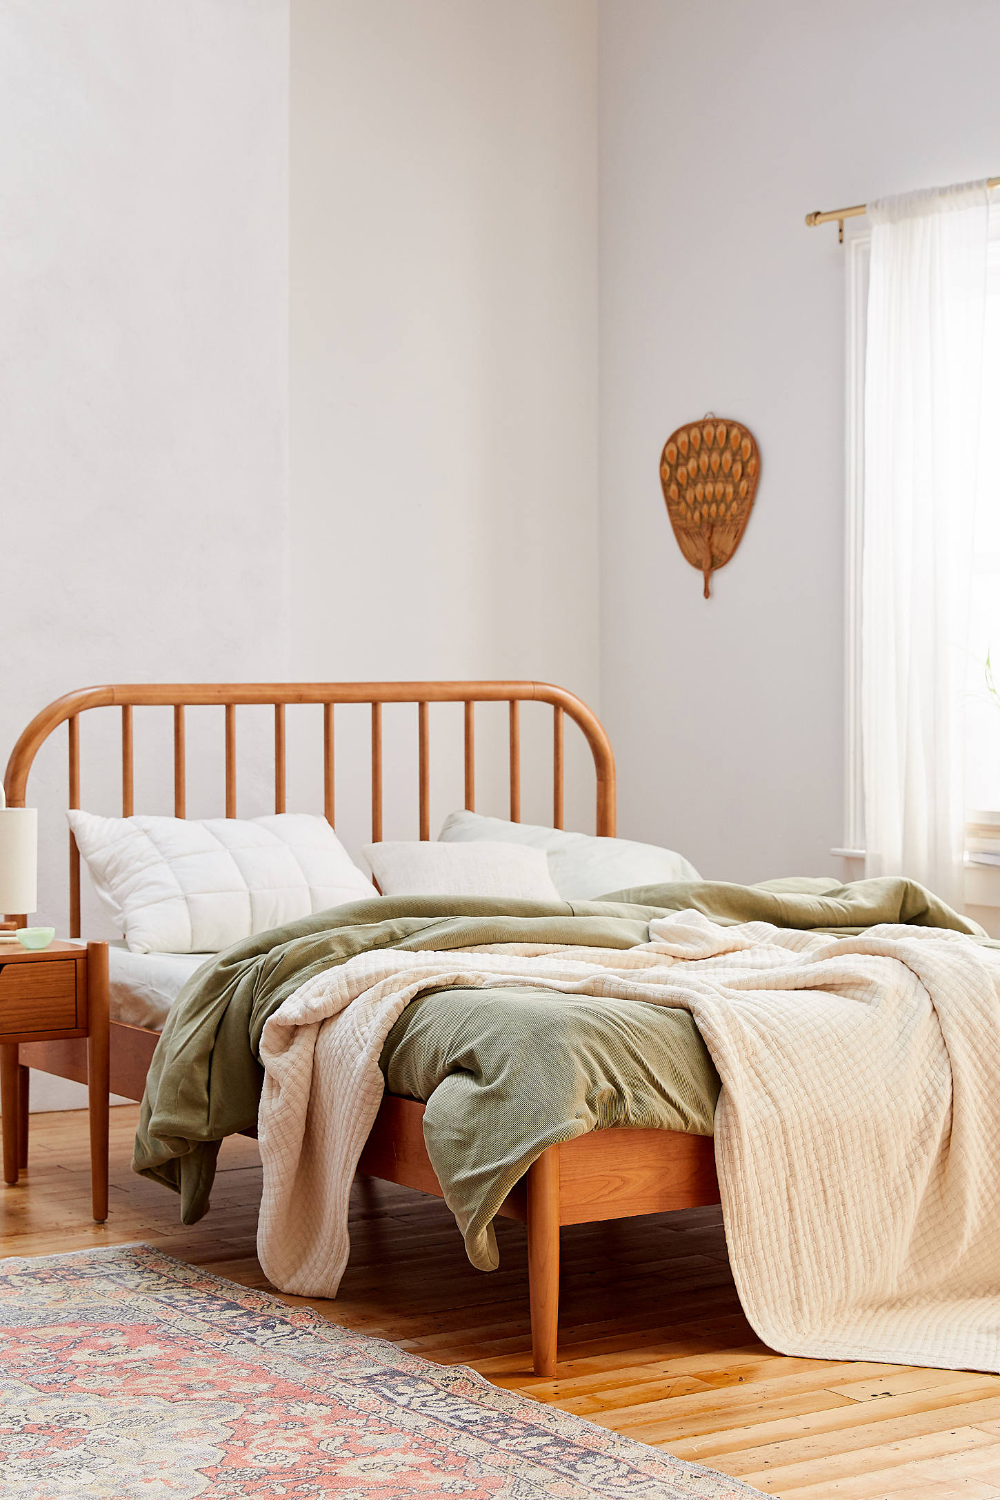 Evie Bed in 2020 Bed frame and headboard, Bed frame